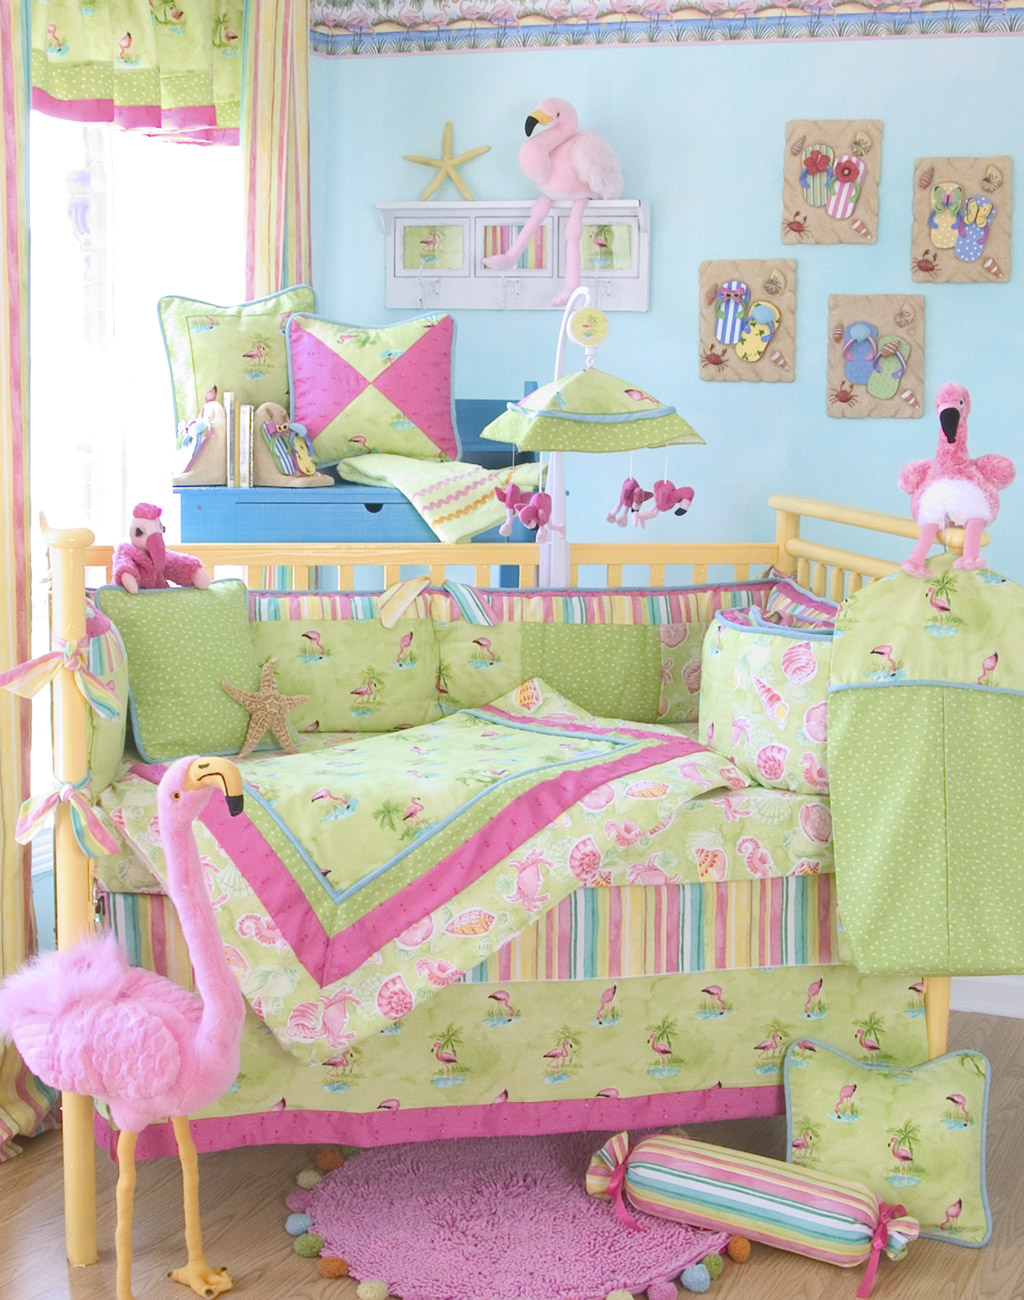 Modern home interior design baby bedding for Baby bedroom design